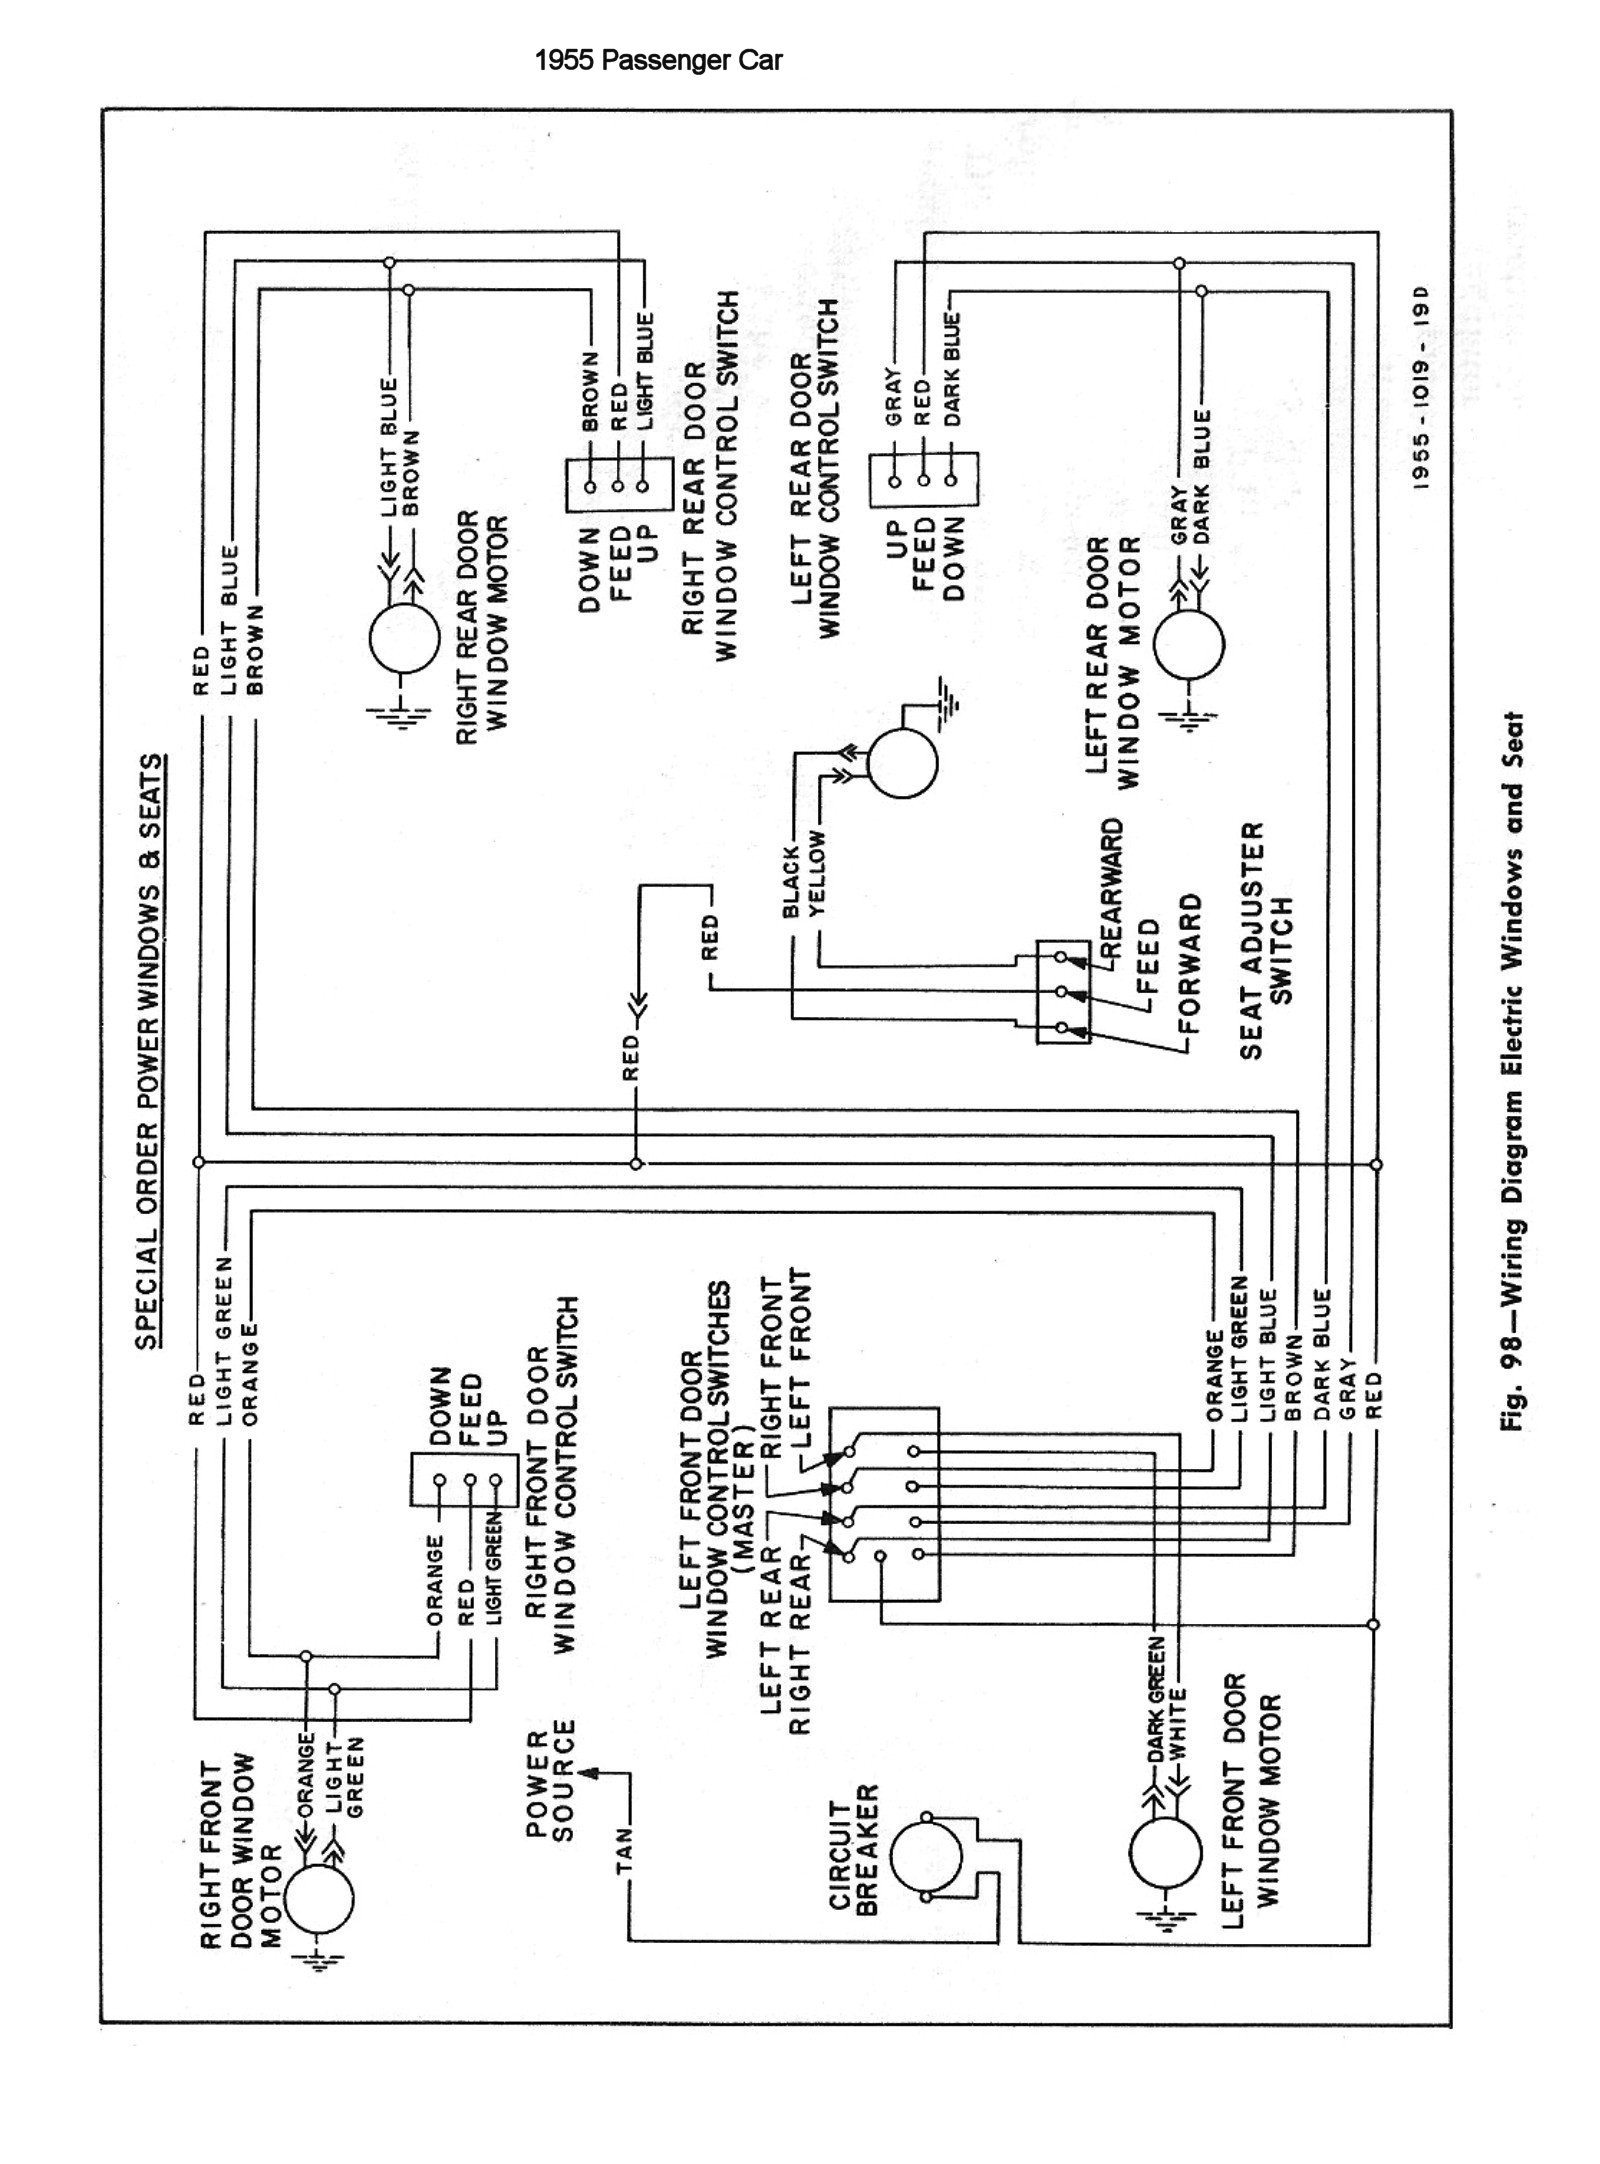 Wrg Chevy Suburban Relay Switch Wiring Diagram Free